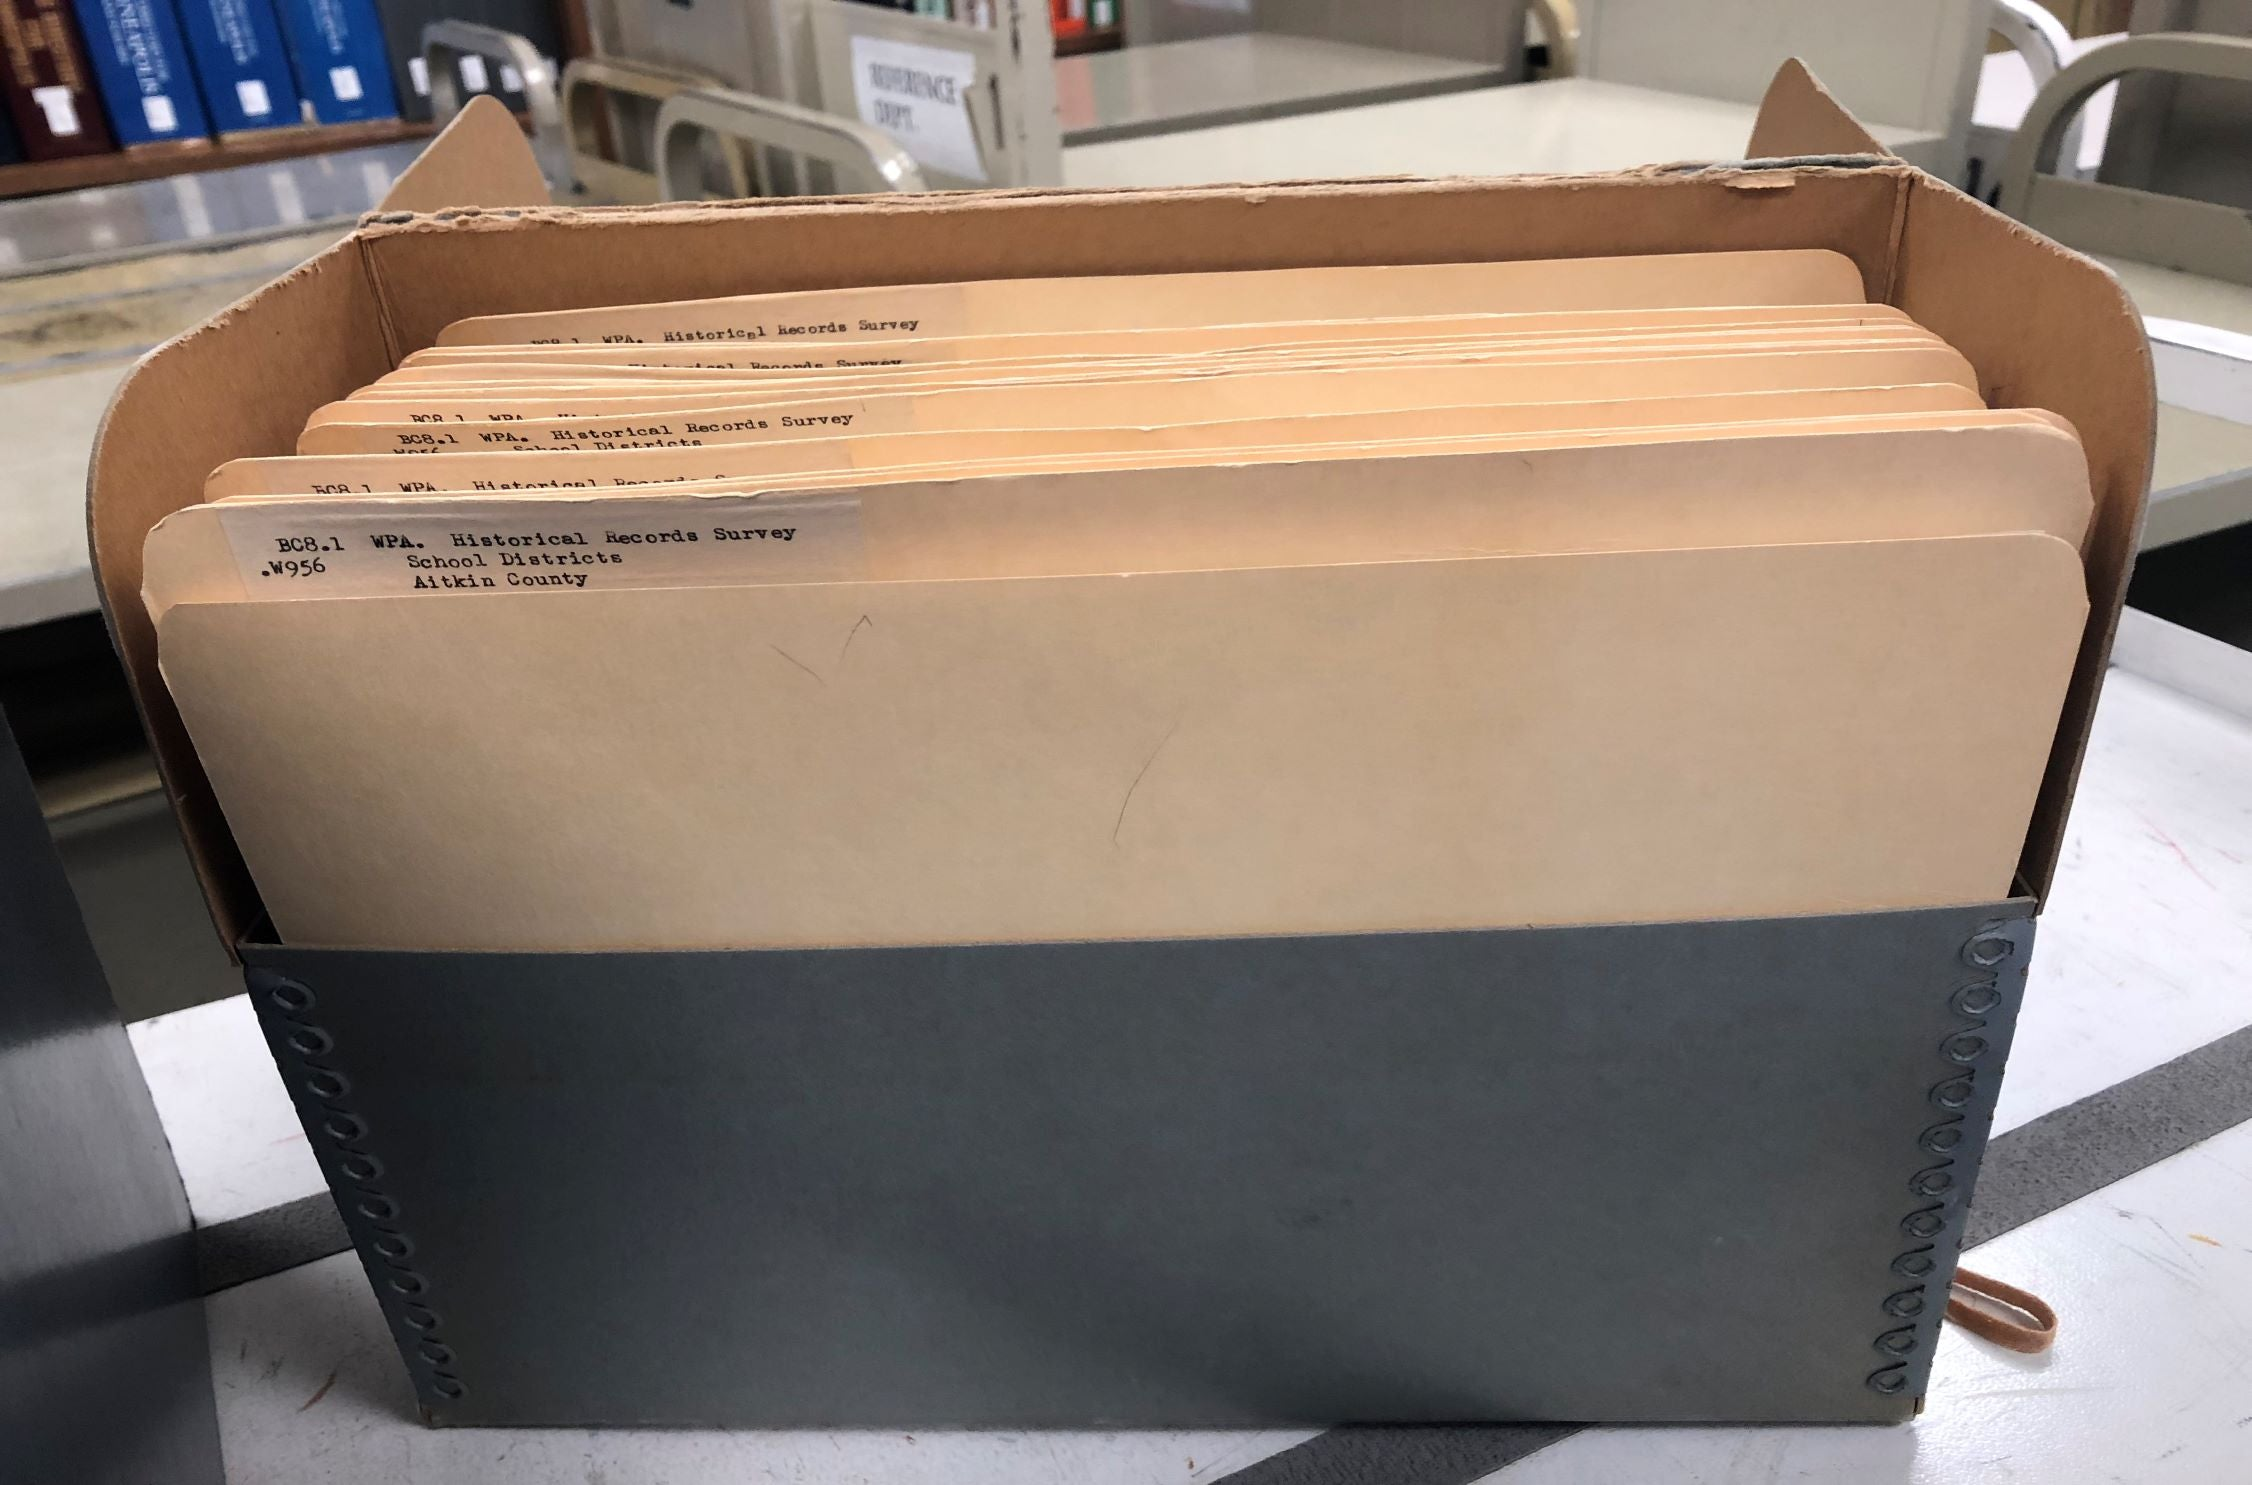 Copy Request (folders from boxes)